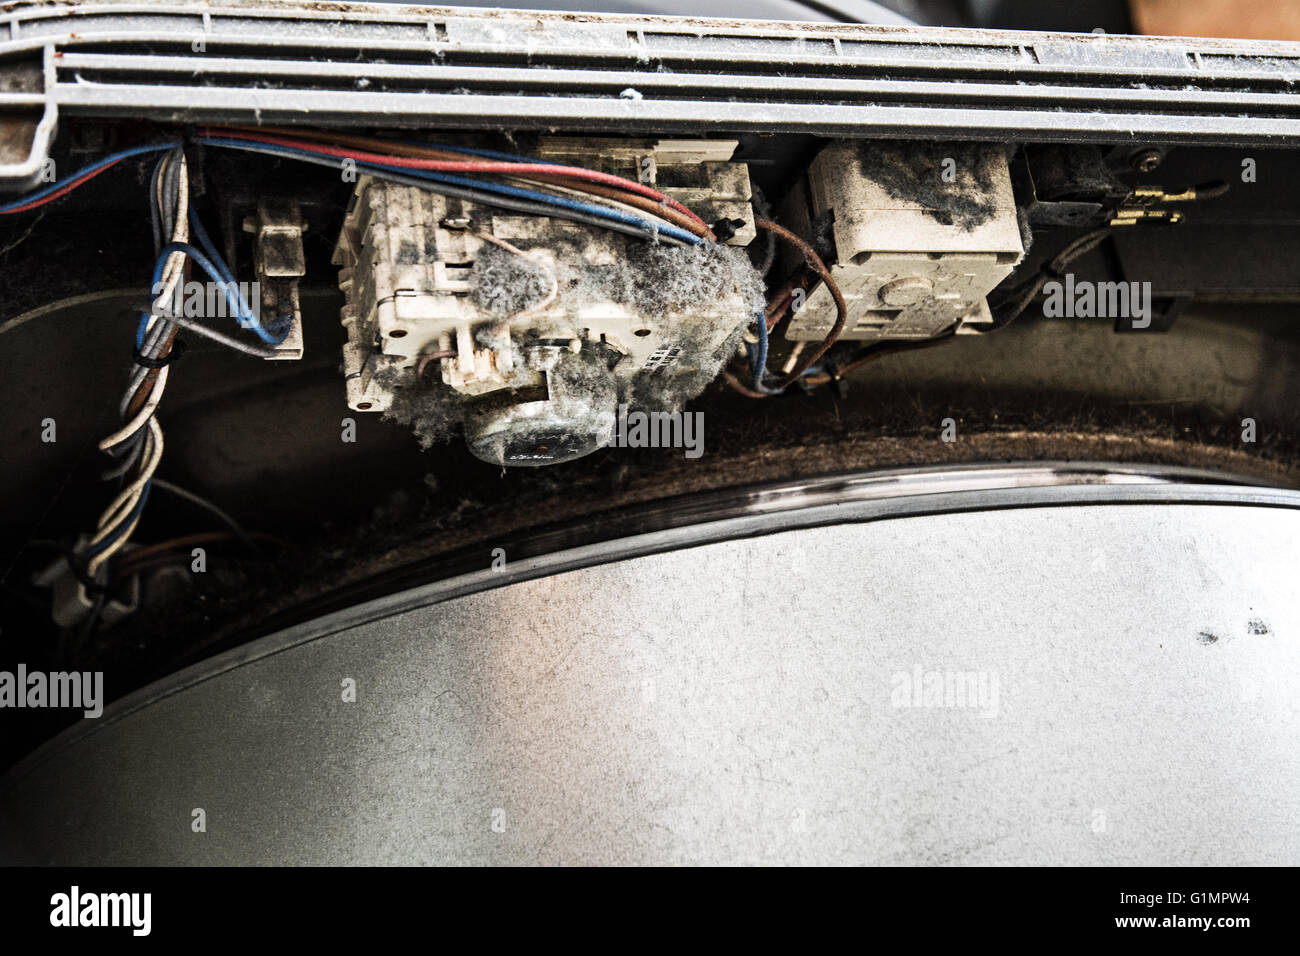 hight resolution of a faulty tumble dryer having the fire prevention repair done in 2016 hotpoint indesit